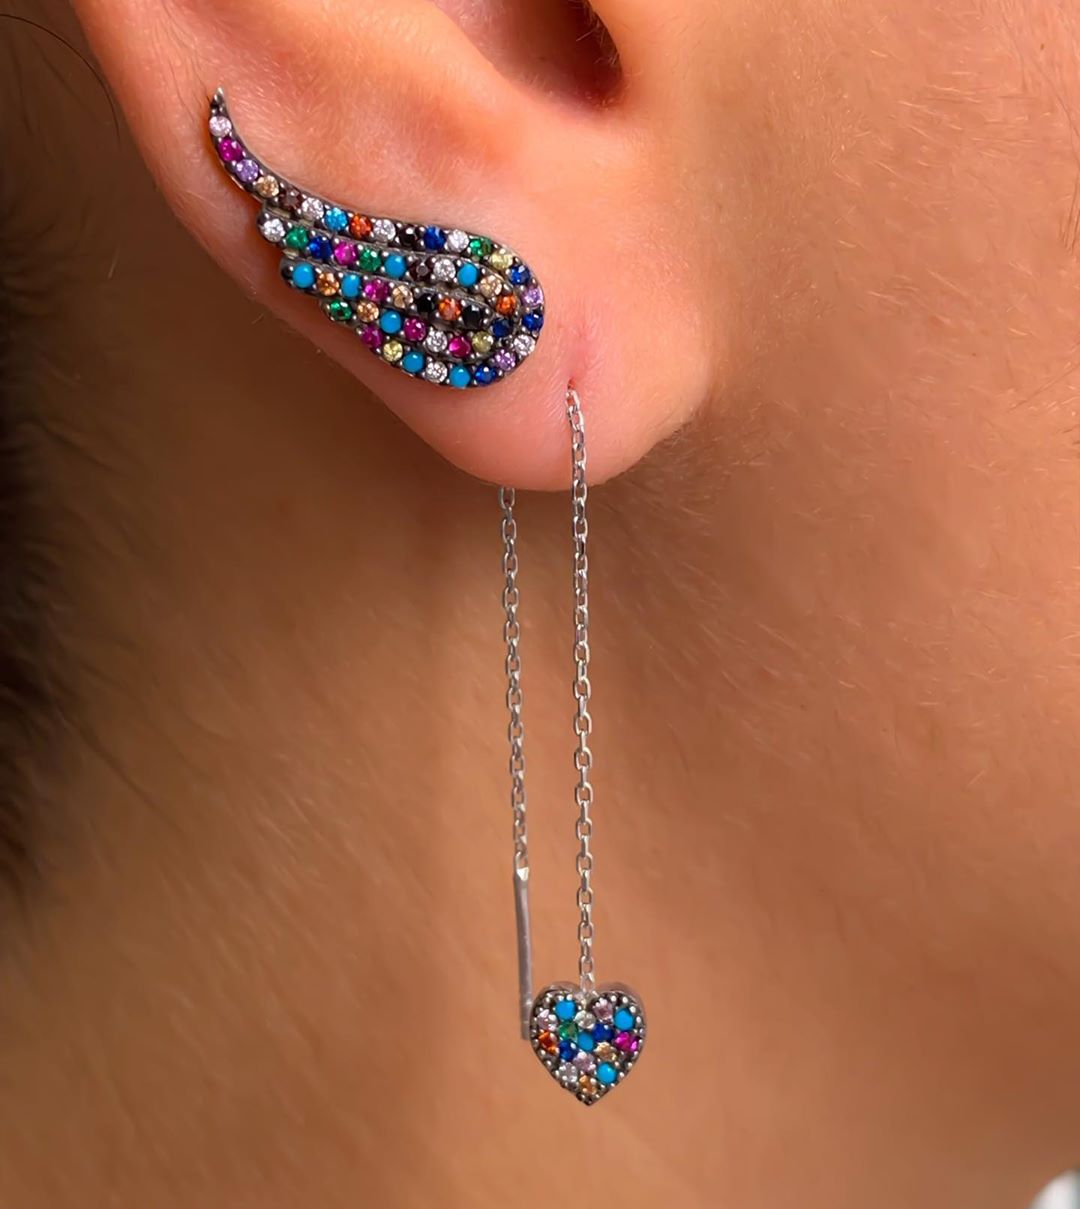 brinco de corrente com ear cuff